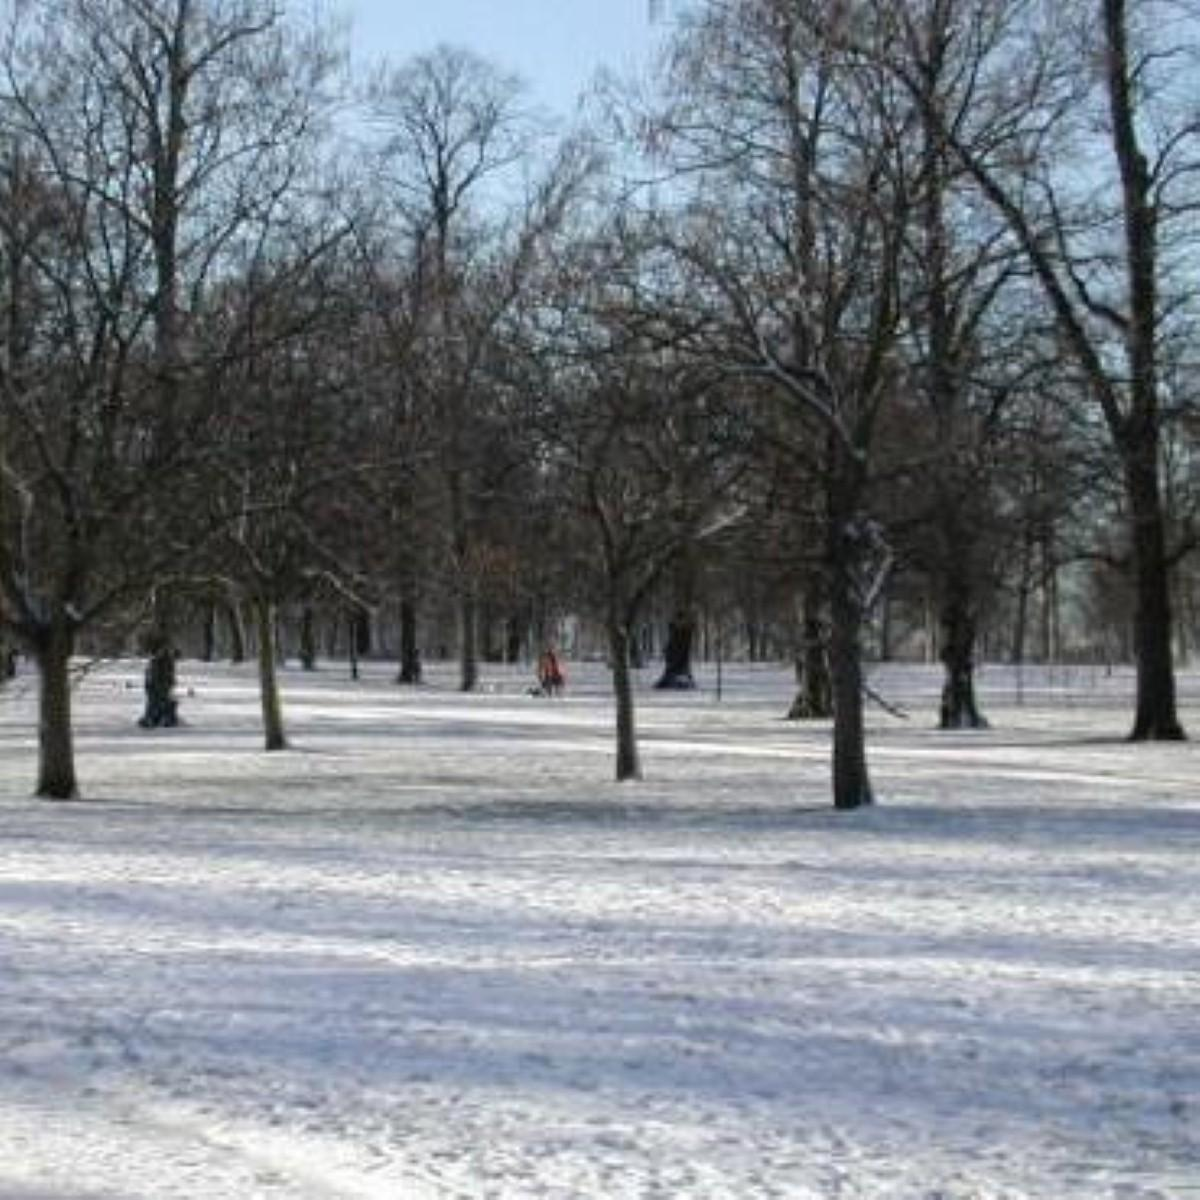 Cold weather 'increases chance of stroke'